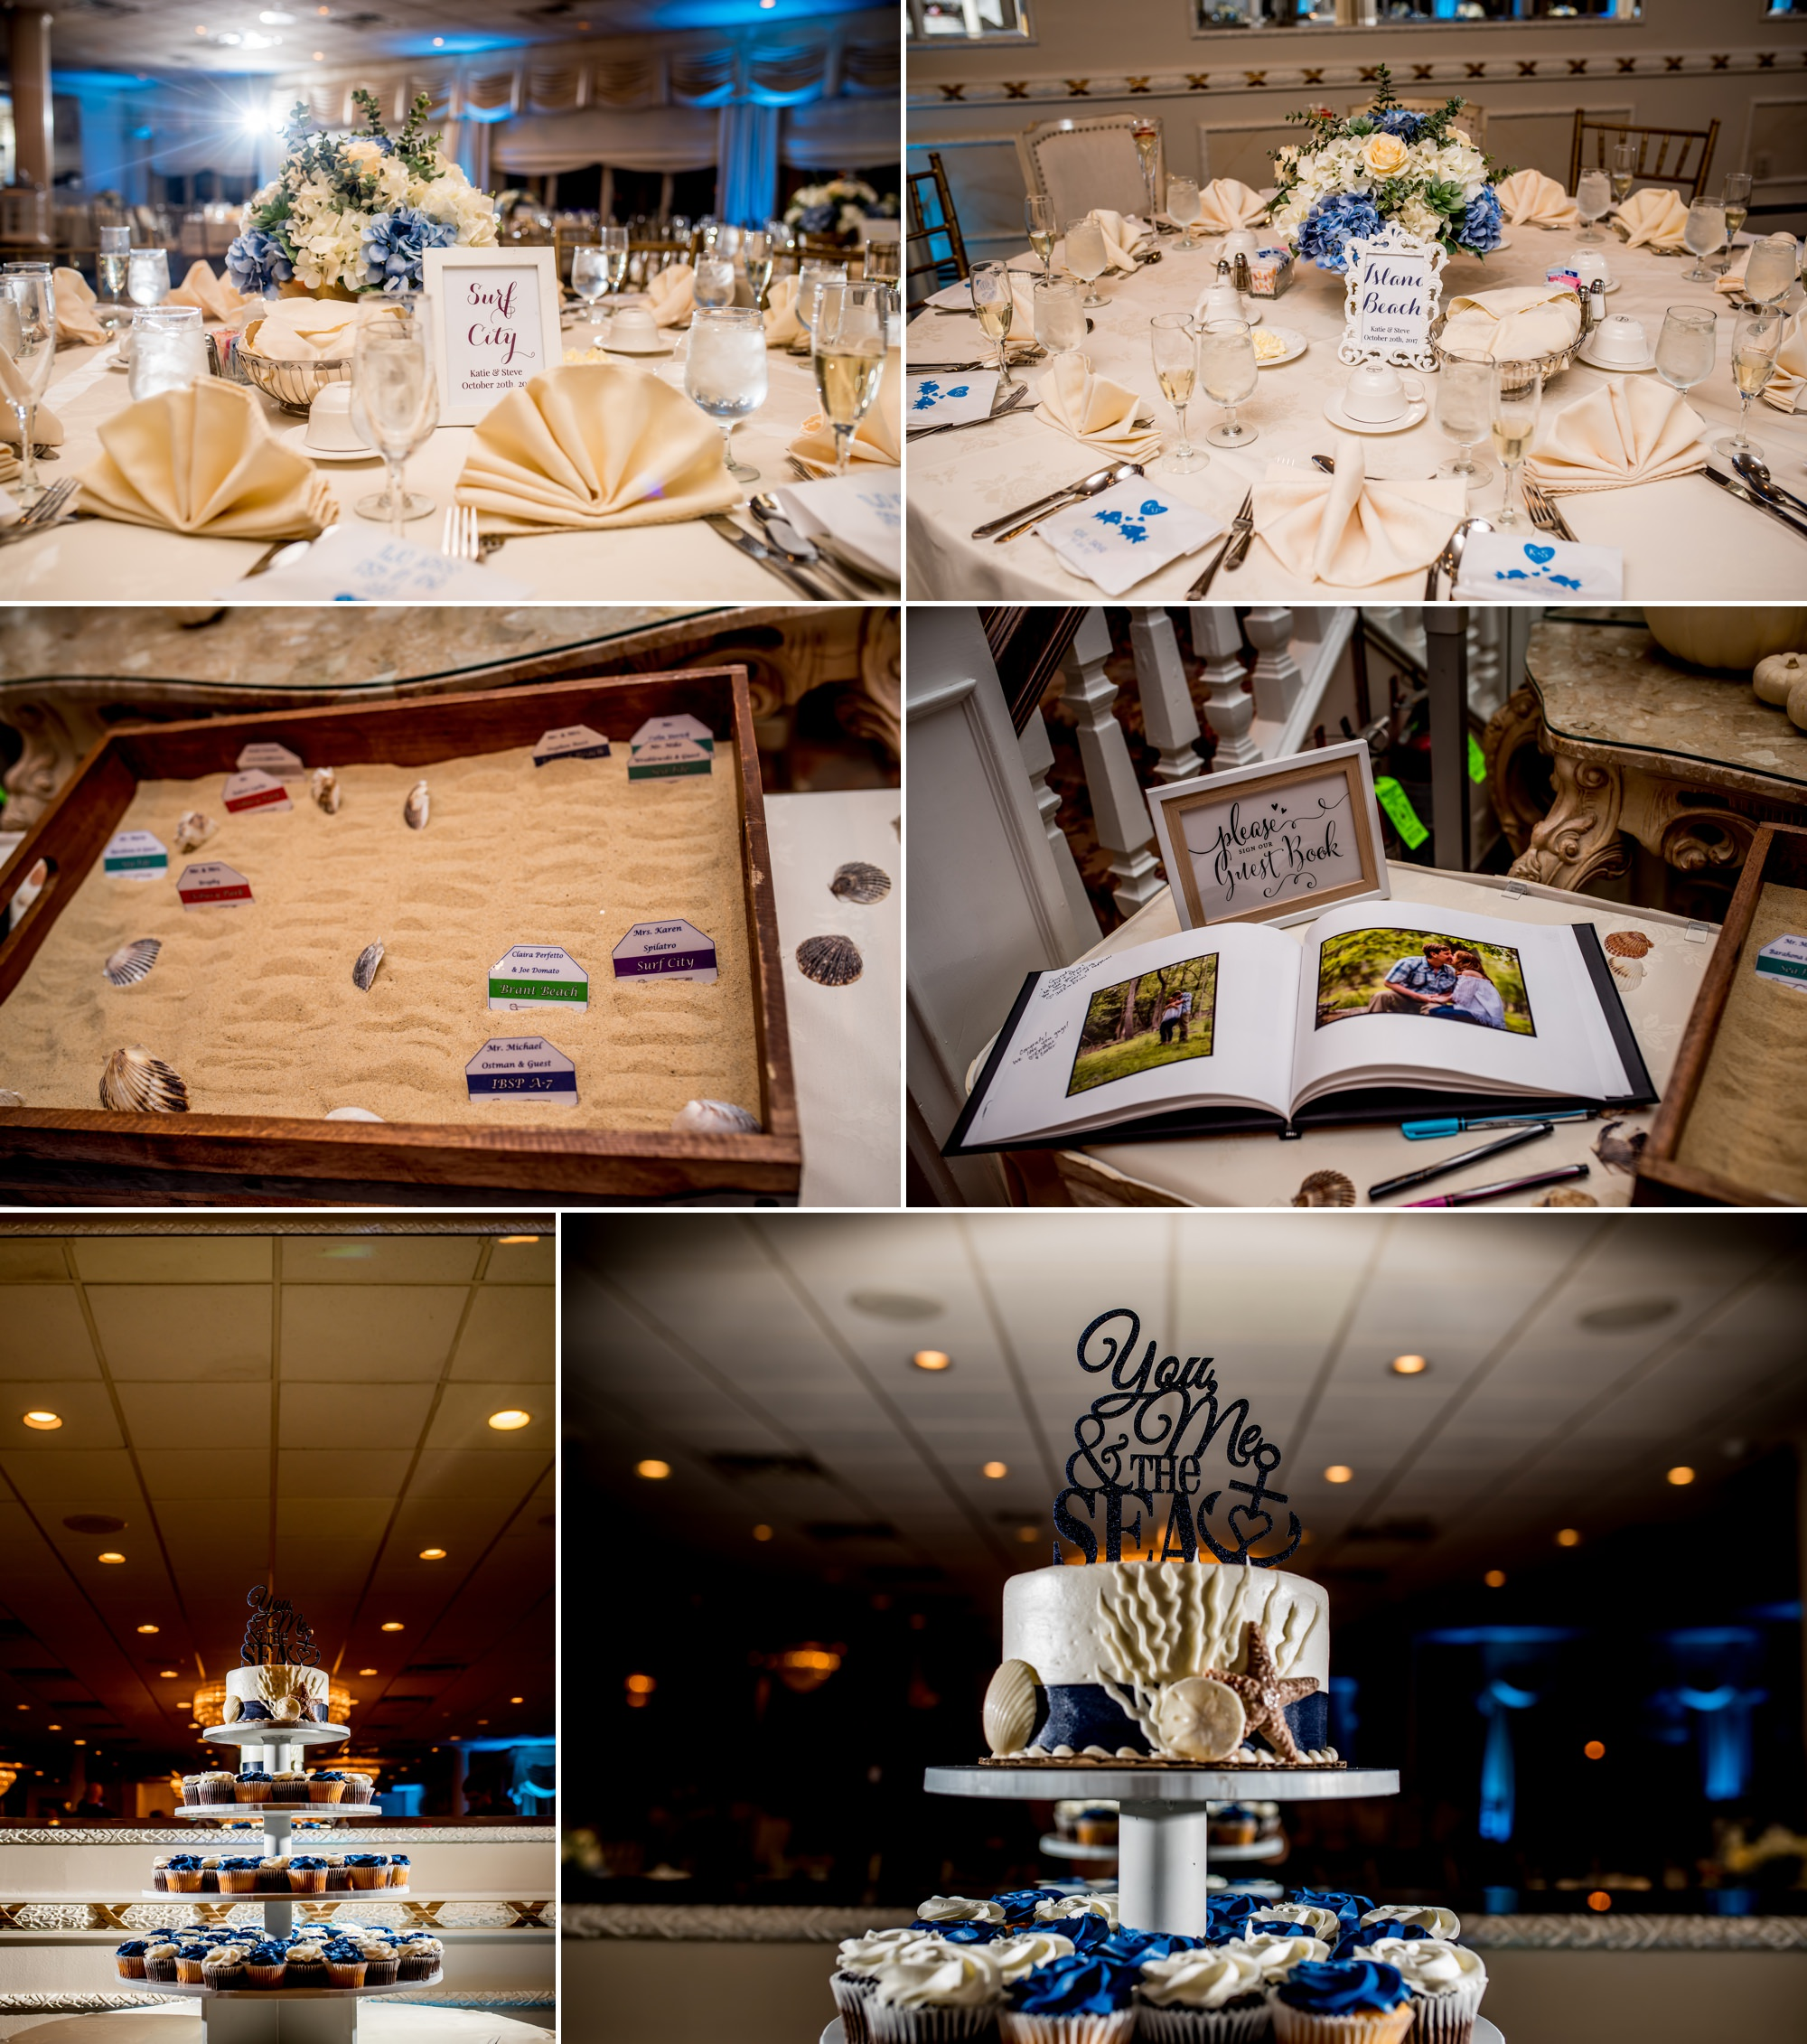 Rossi Wedding | Spring Lake Wedding | Toms River Wedding | NJ Photographer | Spring Lake, NJ | Monmouth County Wedding | Ocean County Wedding | The Breakers on The Ocean